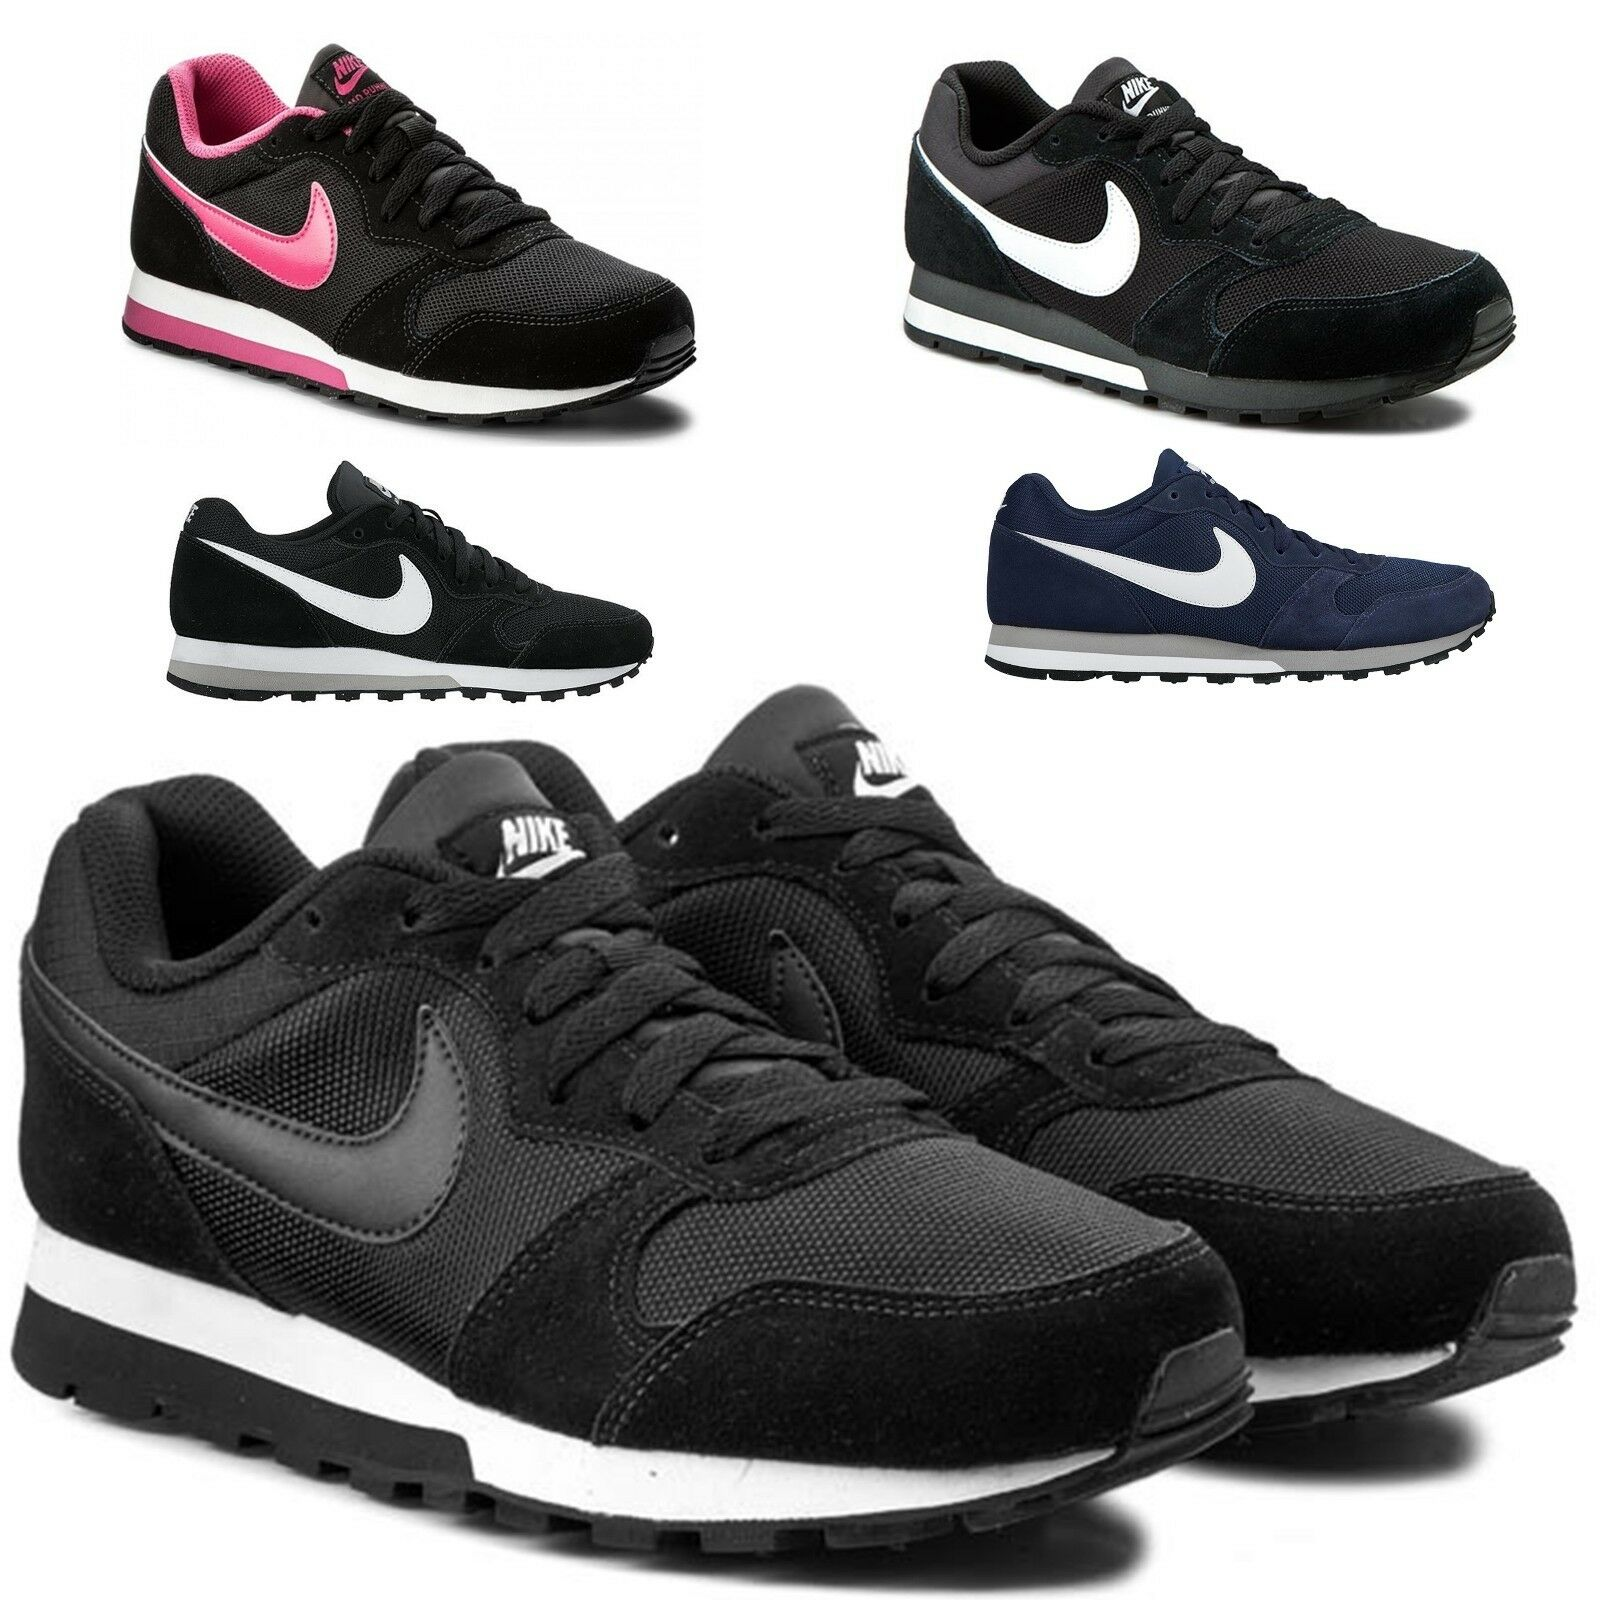 Nike MD Runner 2 Men's Sports shoes Sneakers Trainers  - All colors And Sizes